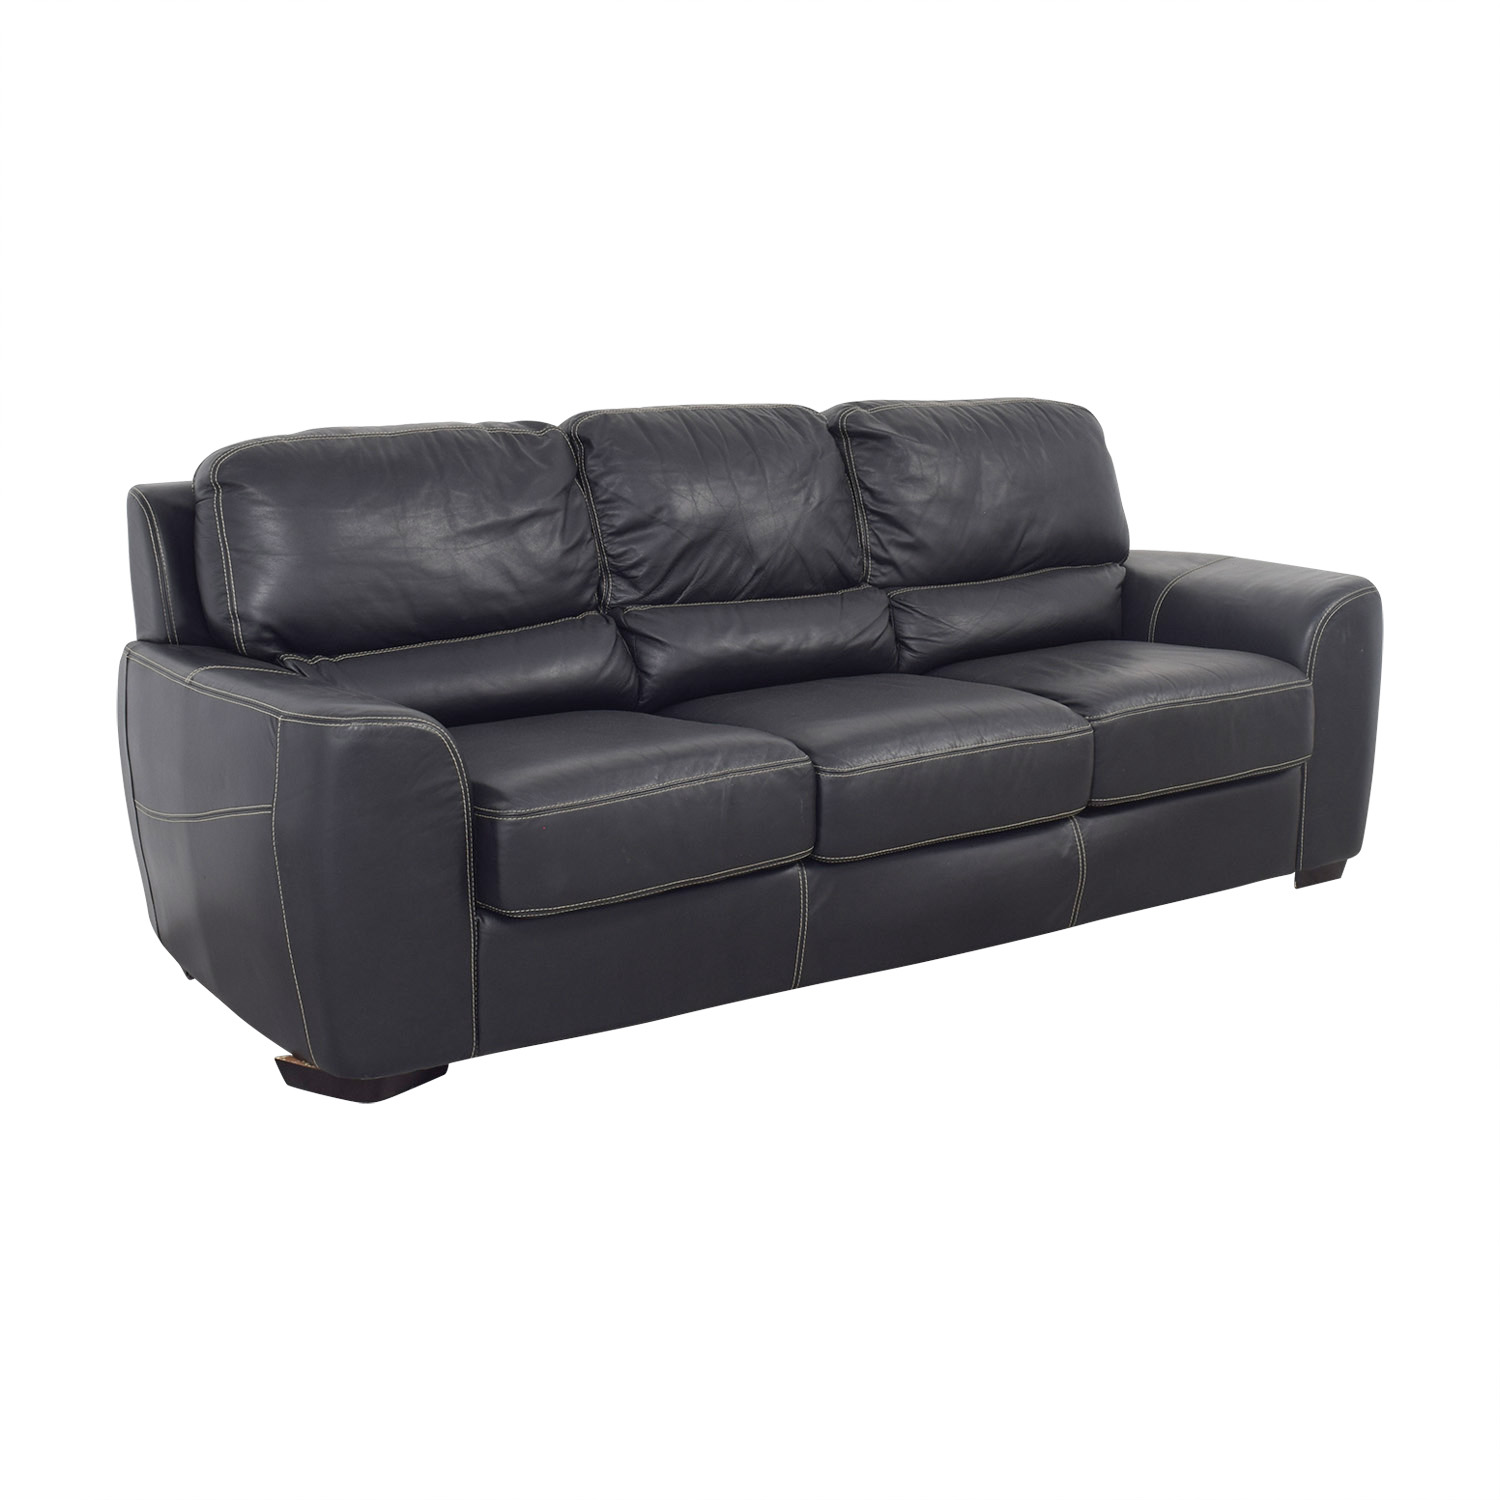 82 Off Z Gallerie Z Gallerie Three Cushion Black